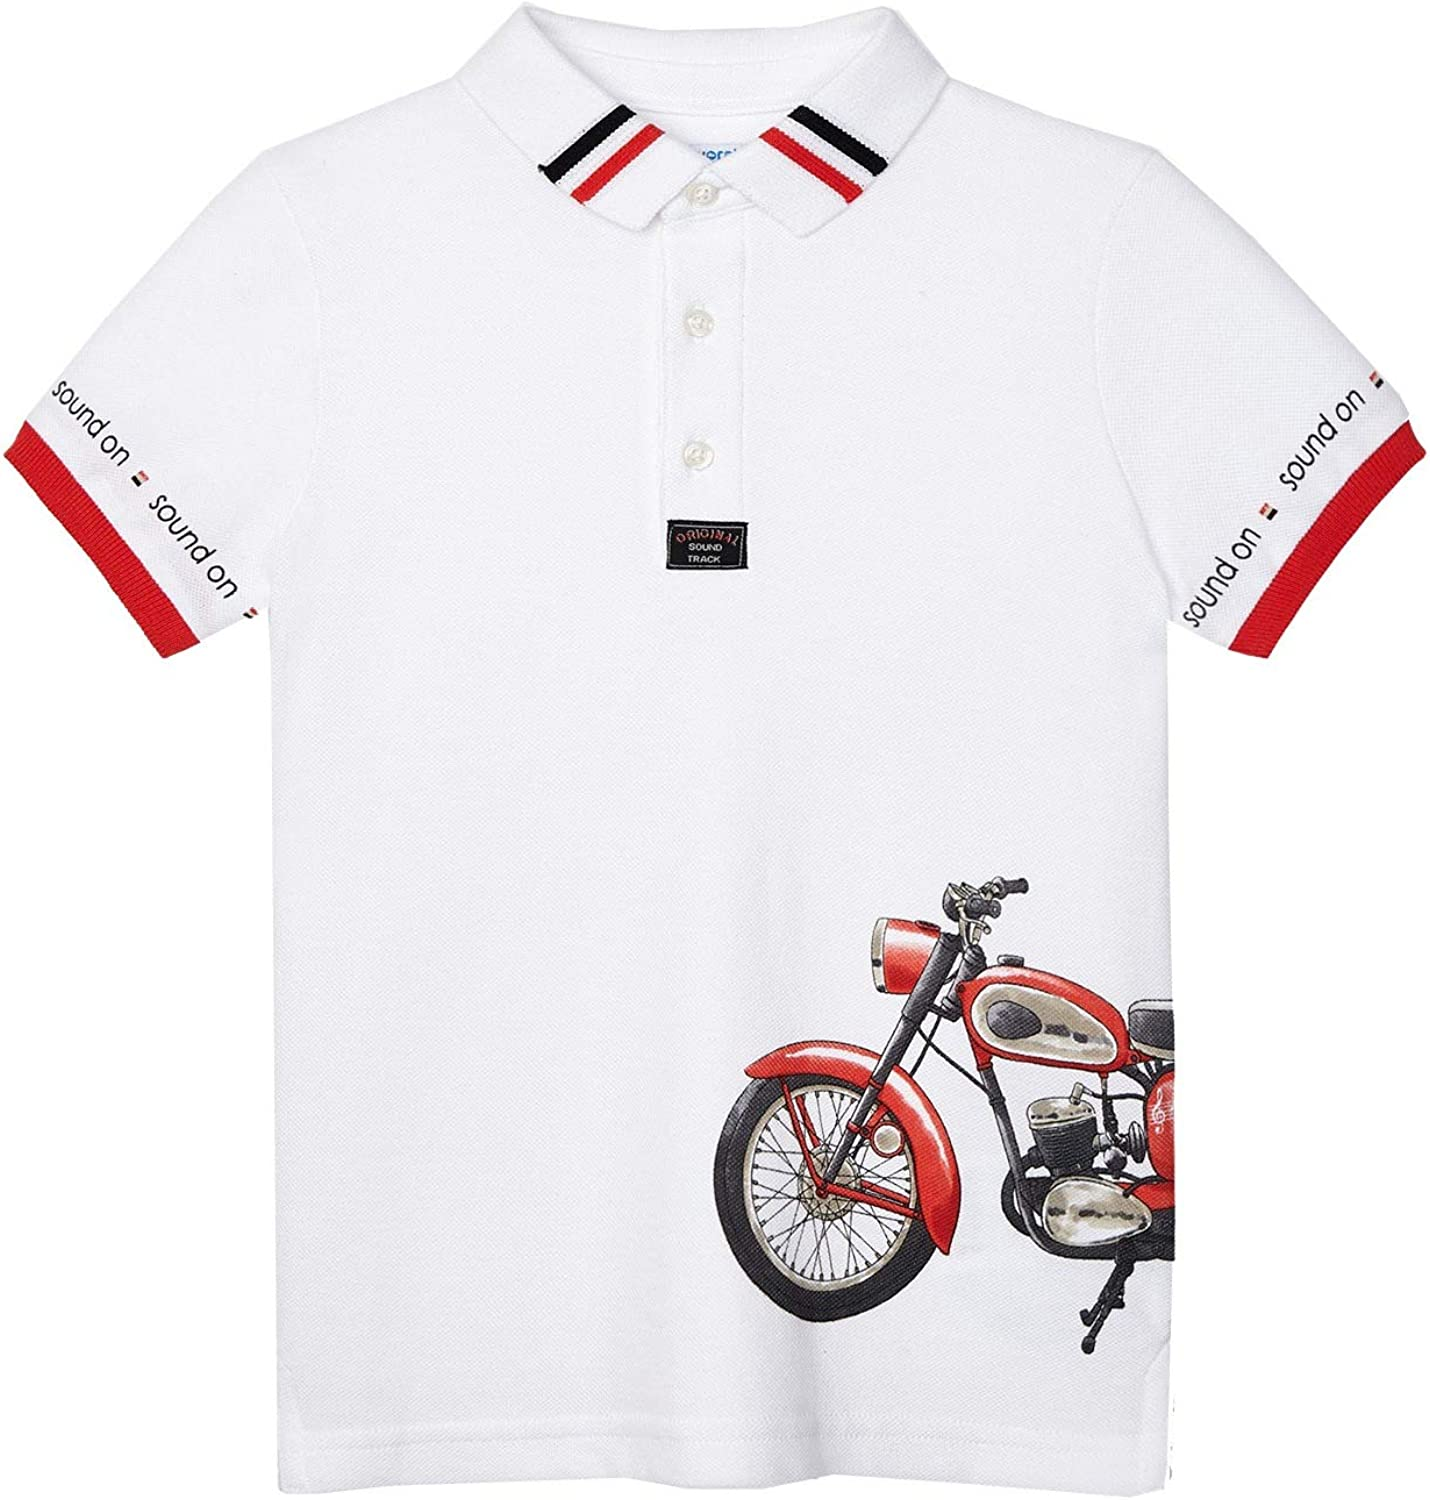 Mayoral - Printed s/s Polo for Boys - 3107, White